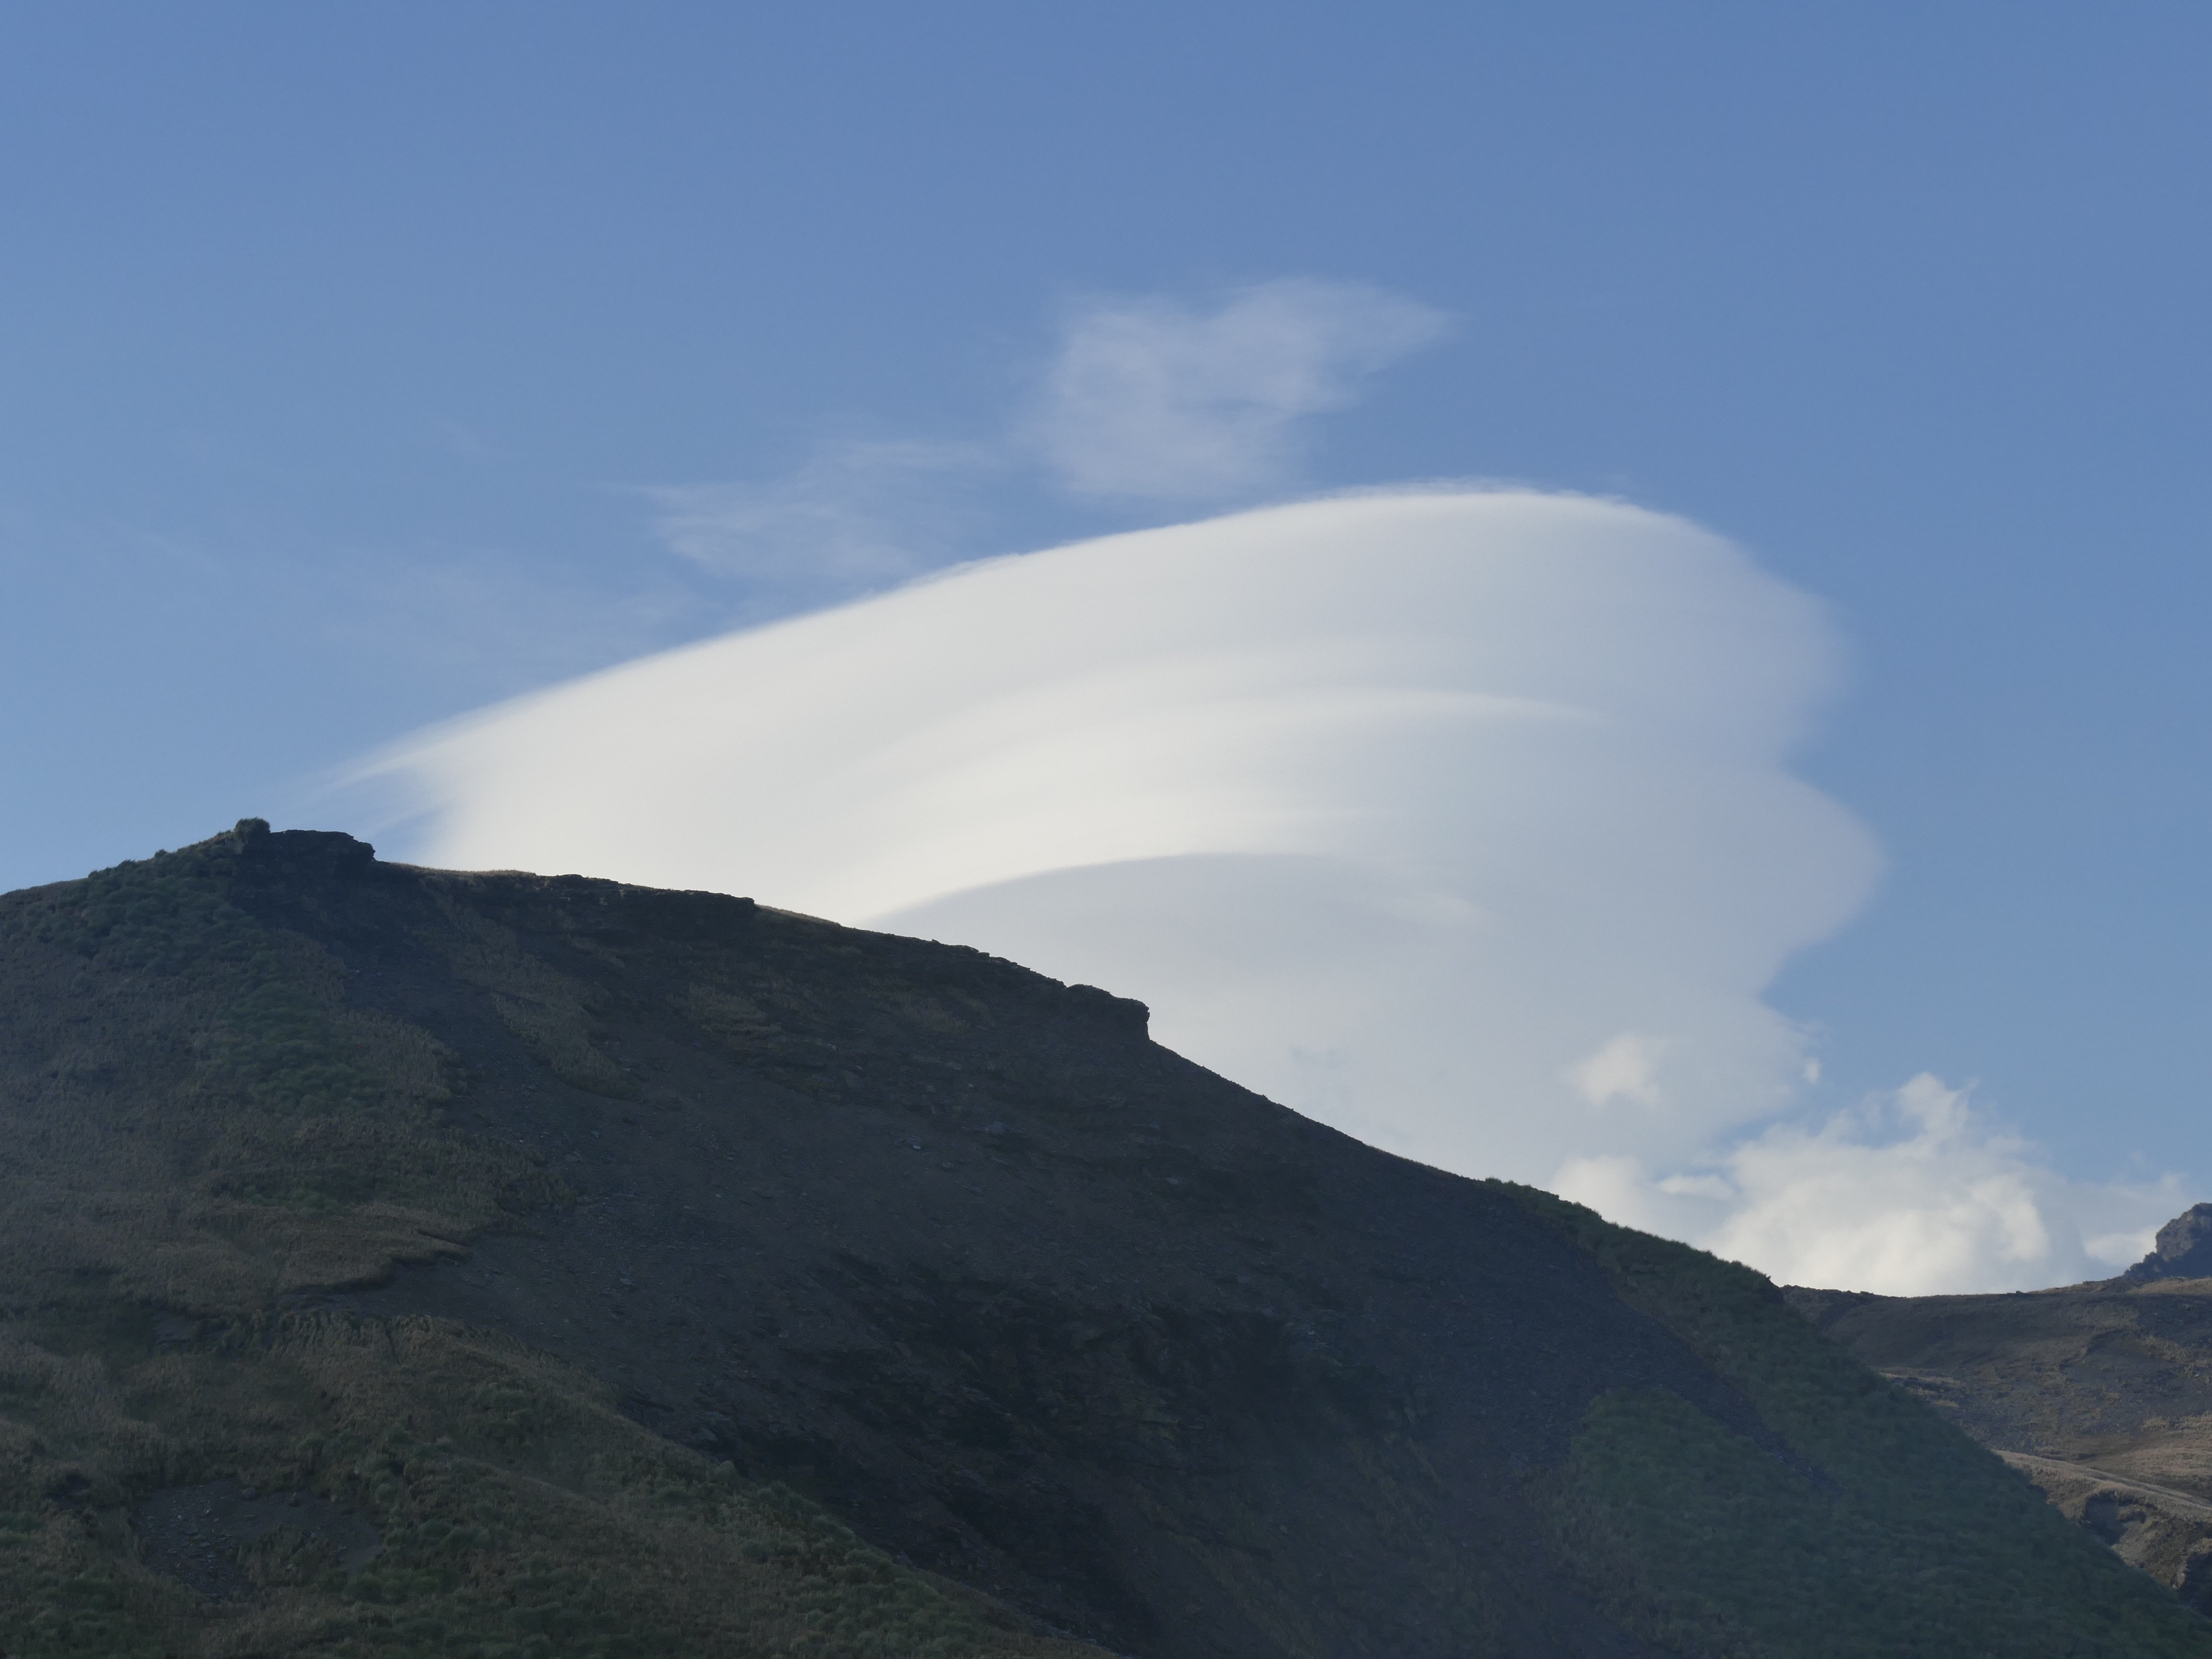 Lenticular clouds over the eastern arm of Fortuna Bay